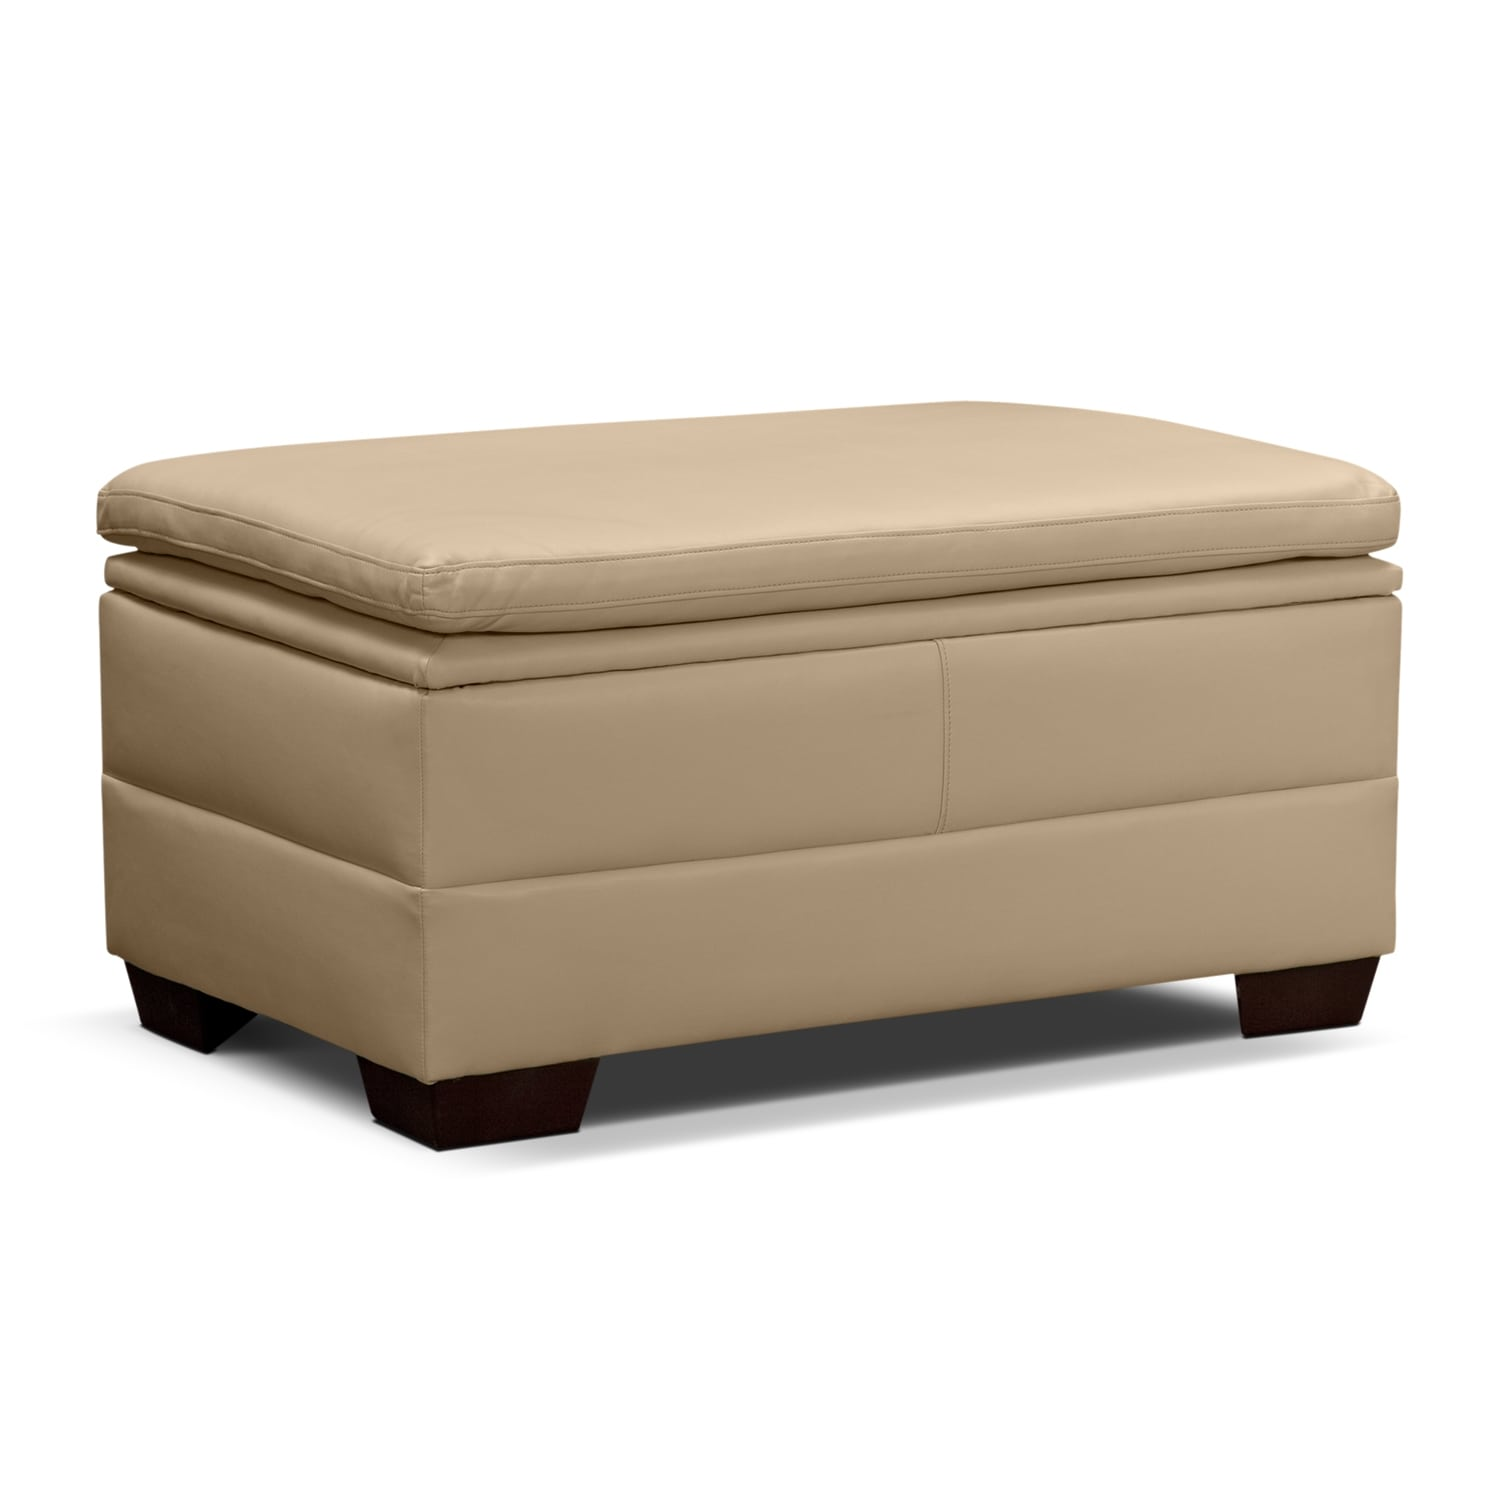 Value City Furniture Ottoman 28 Images Torino Iii Leather Storage Ottoman Value City